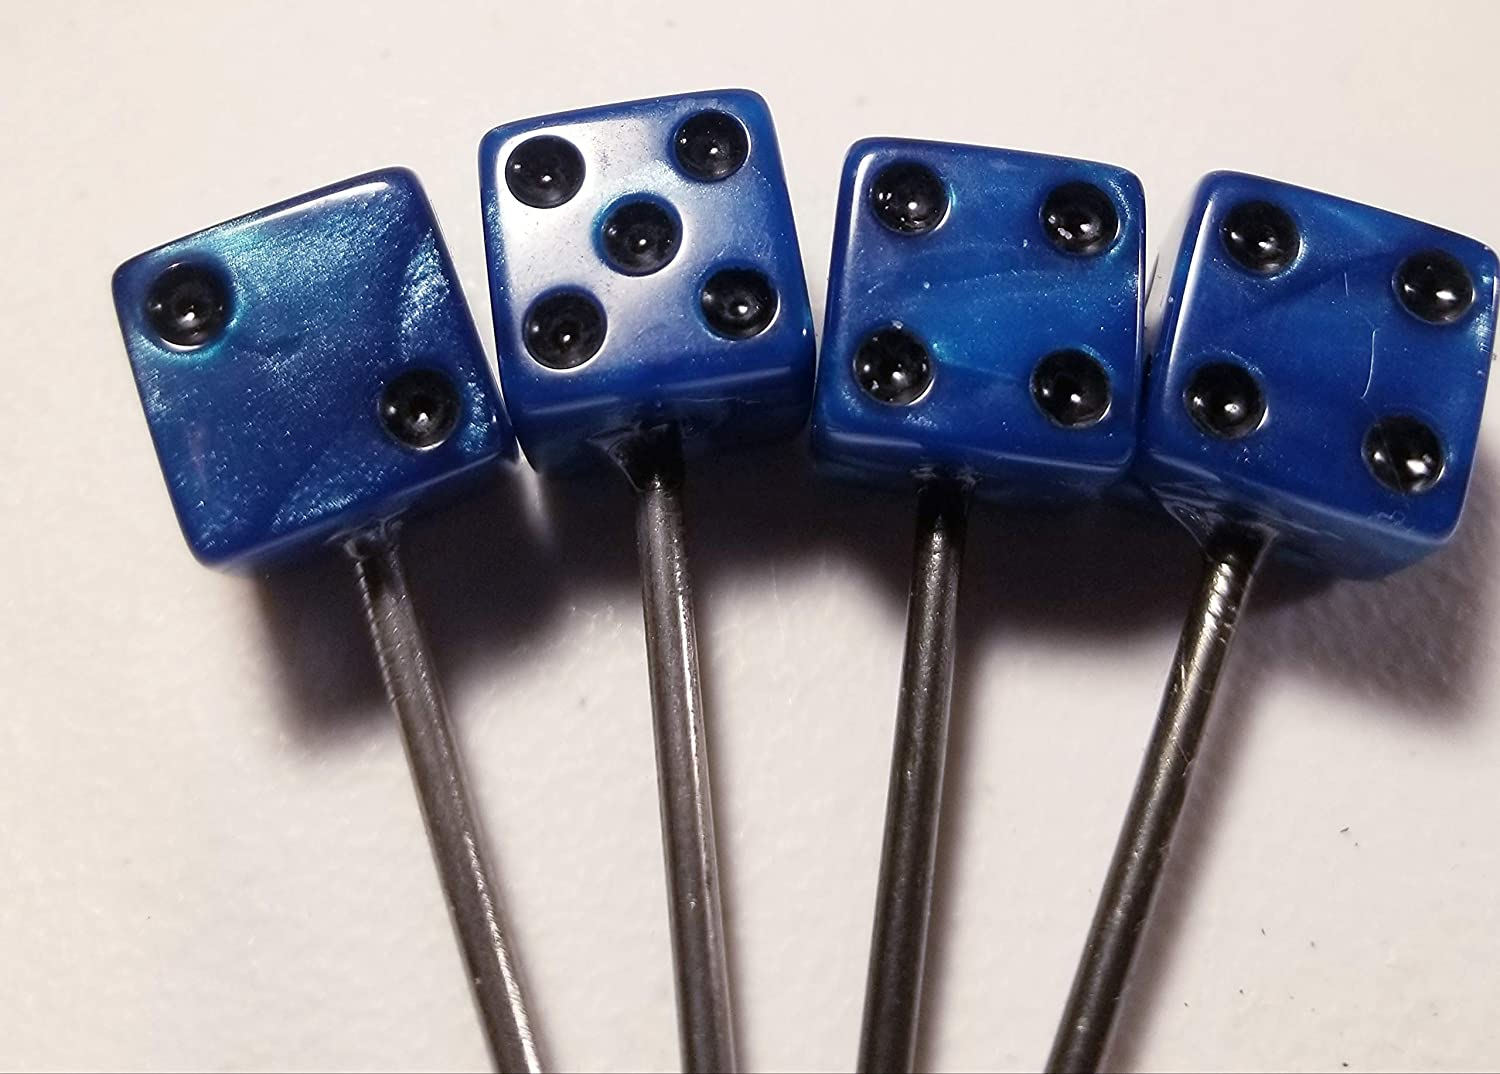 Lucky Draw Archery Marble Blue Dice Target Pins